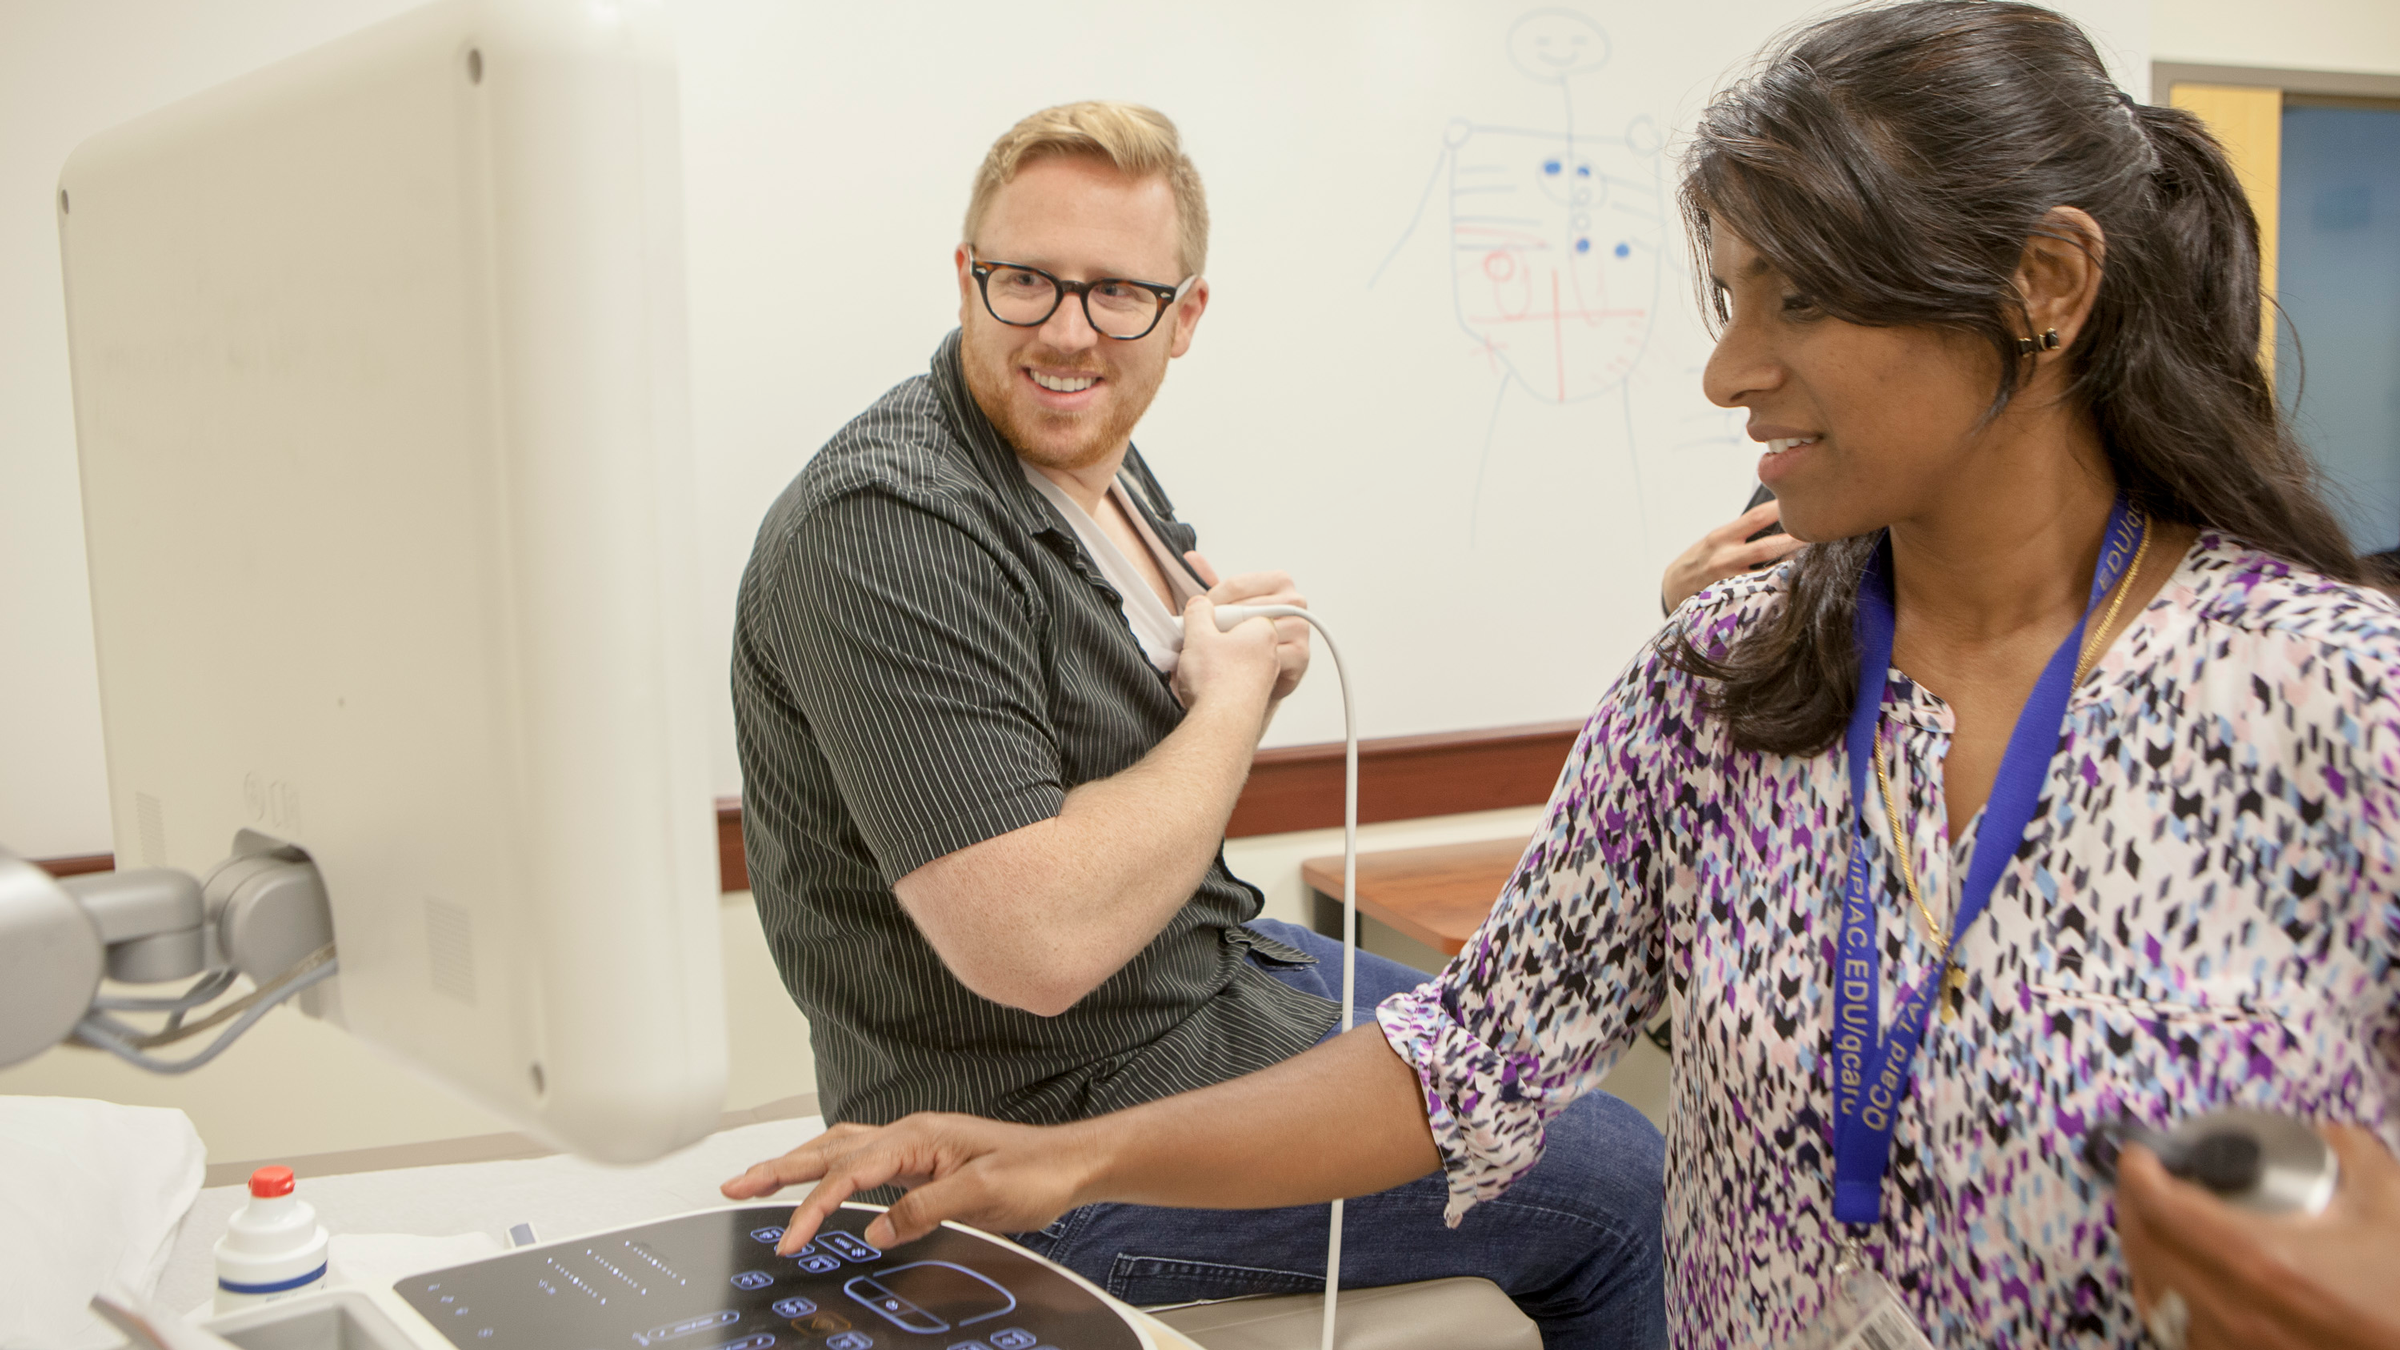 Dr. Professor Listy Thomas, right, instructs Cameron Harrison MD '17 in sonogram techniques in the Center for Medicine, Nursing and Health Sciences. Thomas has been developing an interdisciplinary ultrasound curriculum with the School of Health Sciences.